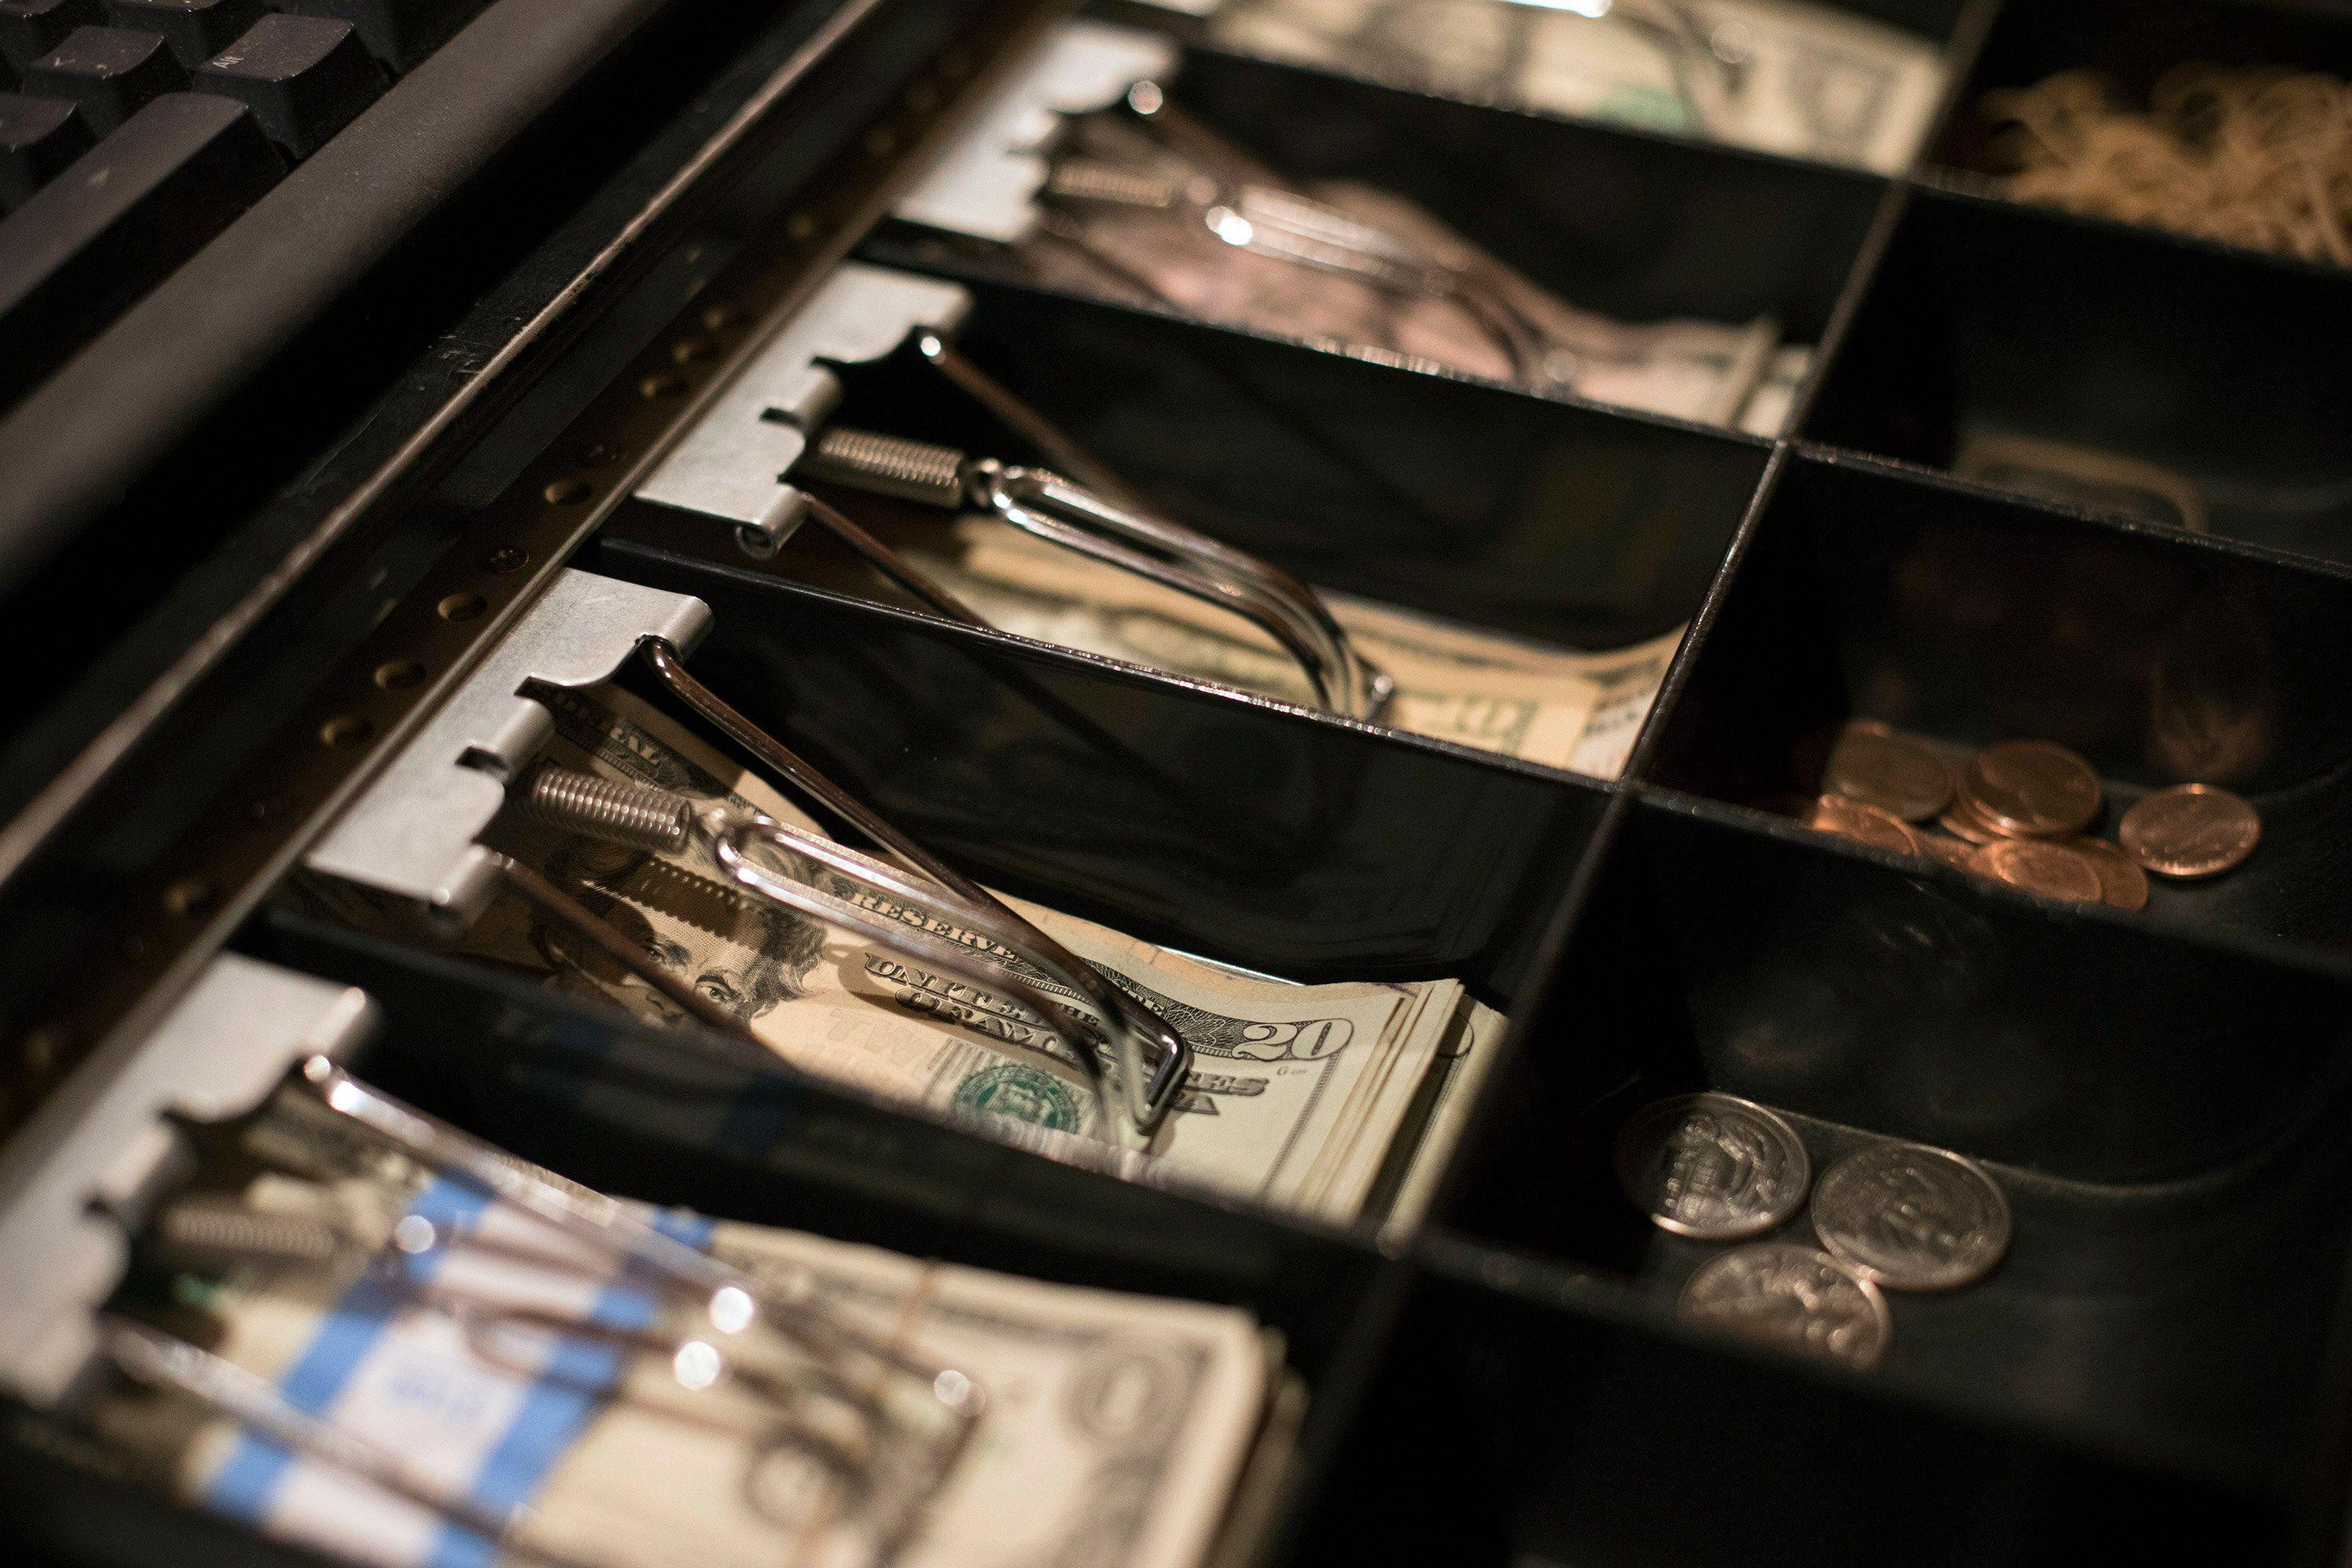 Tax refunds are $11.5 billion behind our forecast: UBS